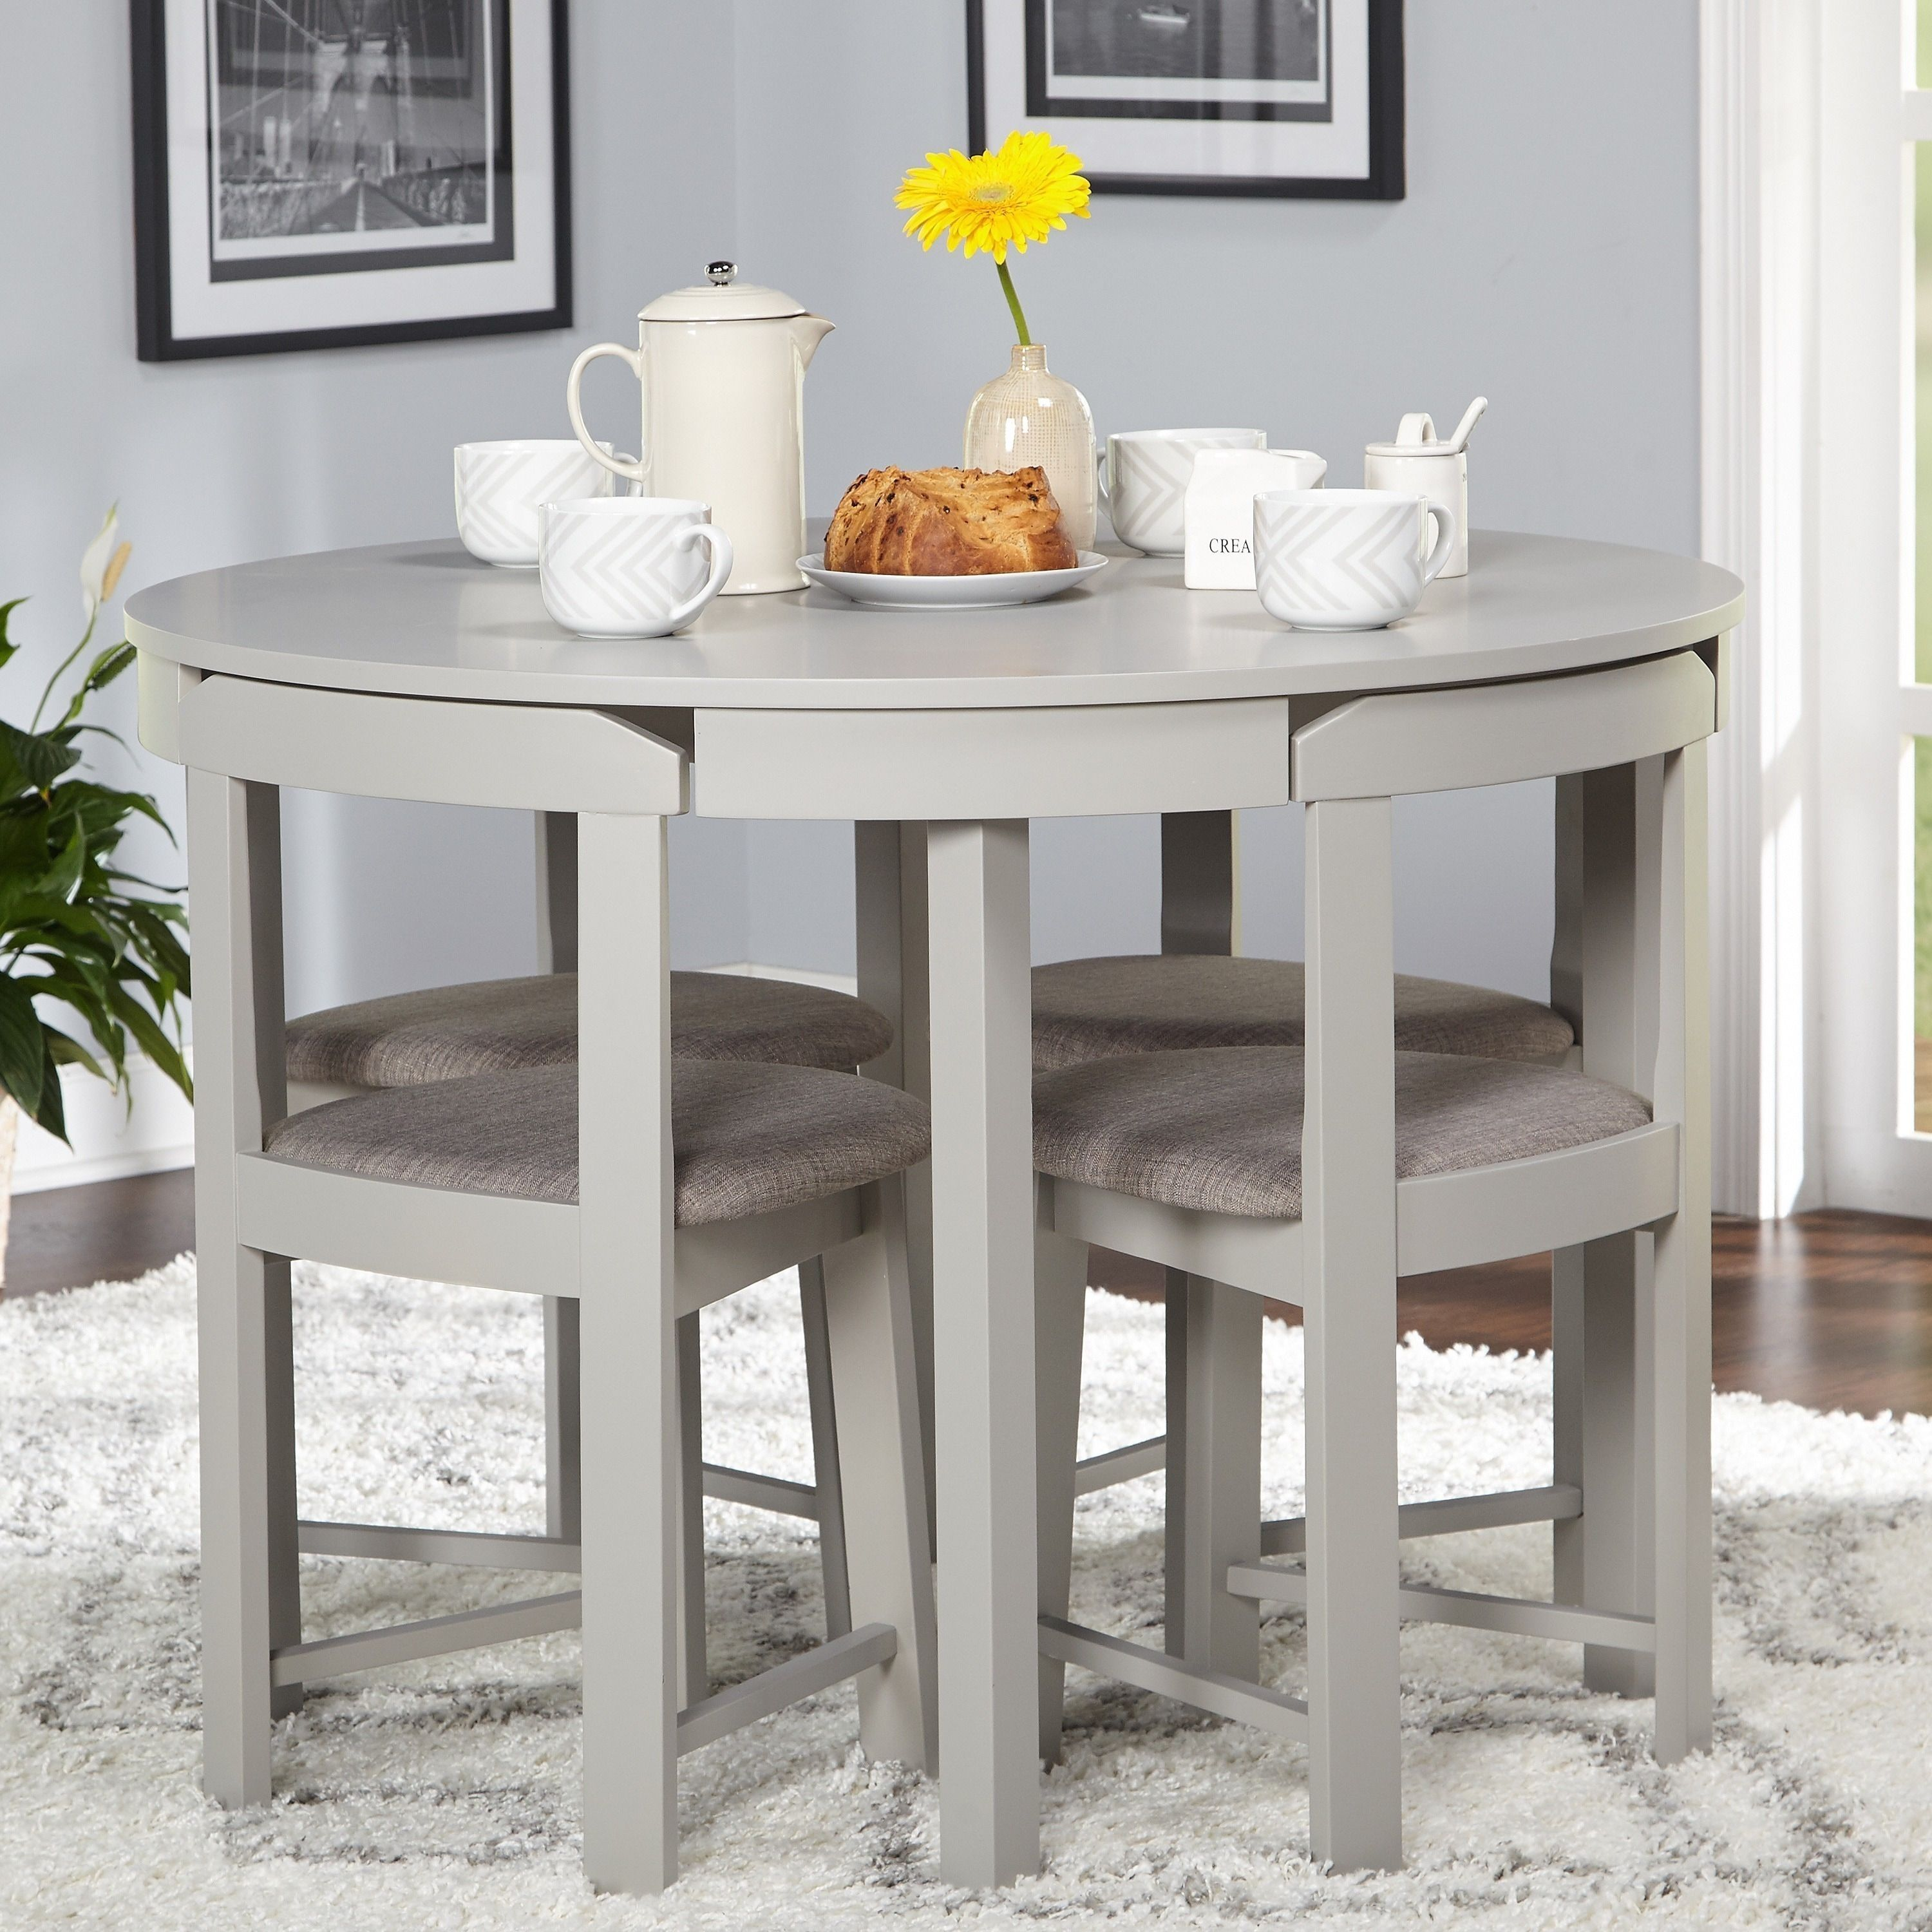 Overstock Com Online Shopping Bedding Furniture Electronics Jewelry Clothing More Kitchen Table Settings Dining Room Small Round Dining Room